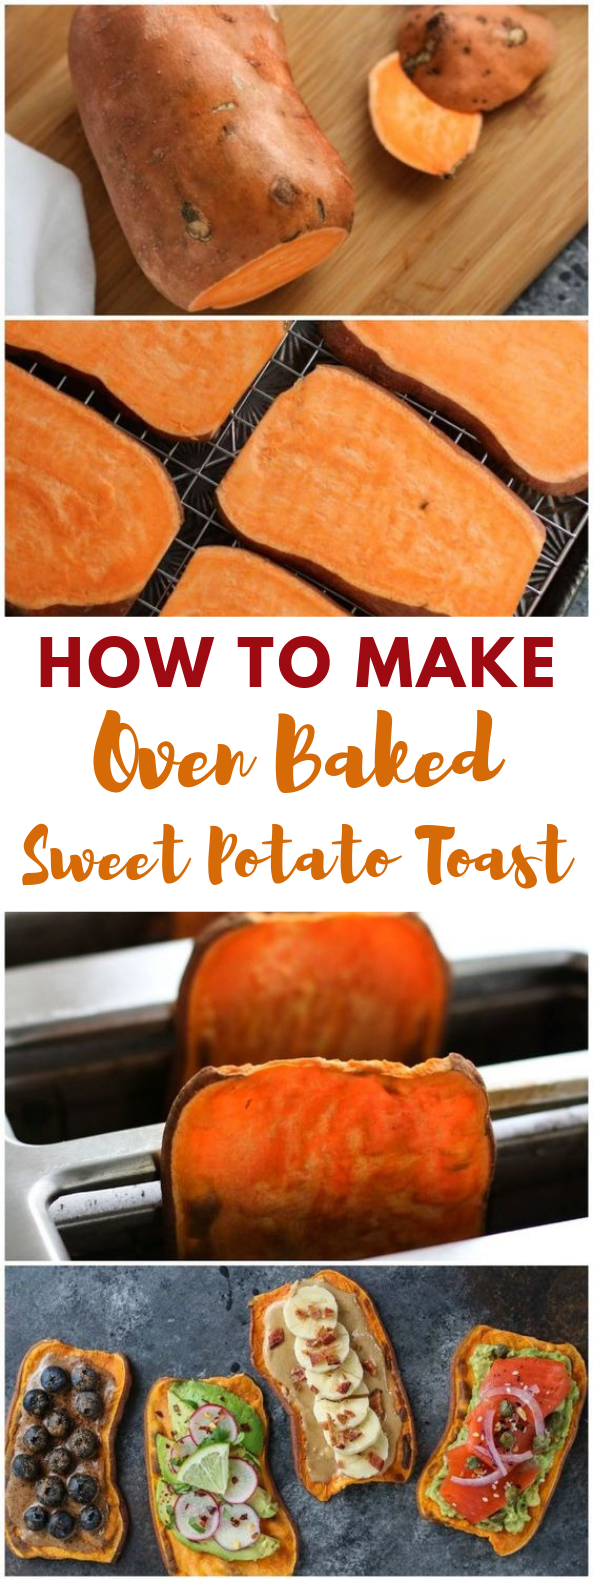 Oven Baked Sweet Potato Toast 4 Ways #Potato #Breakfast